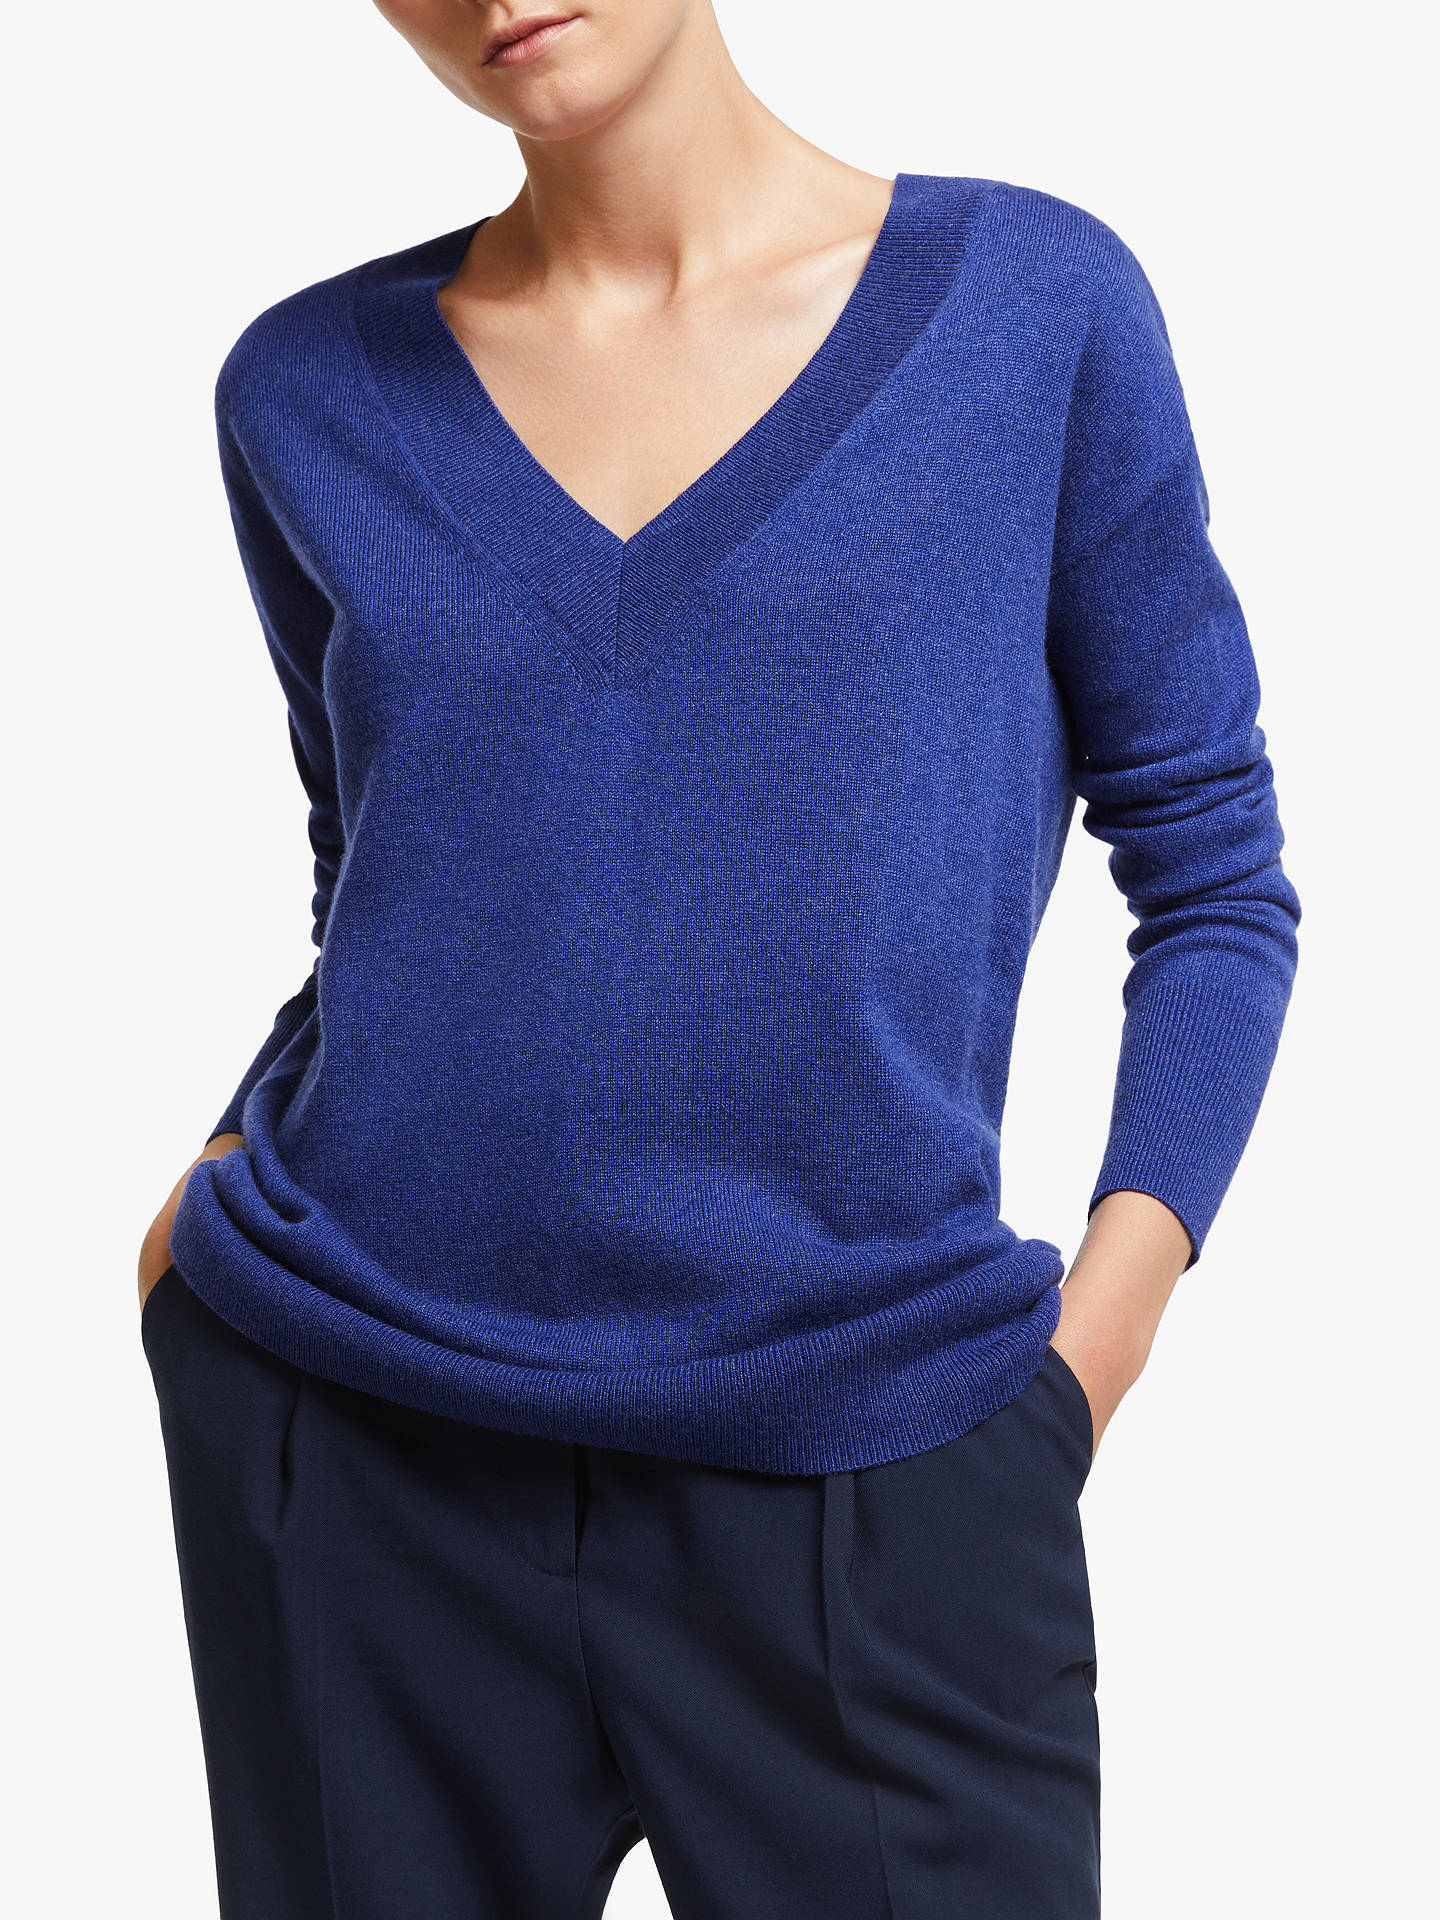 John Lewis & Partners Cashmere Relaxed V Neck Sweater, Twilight Blue by John Lewis & Partners